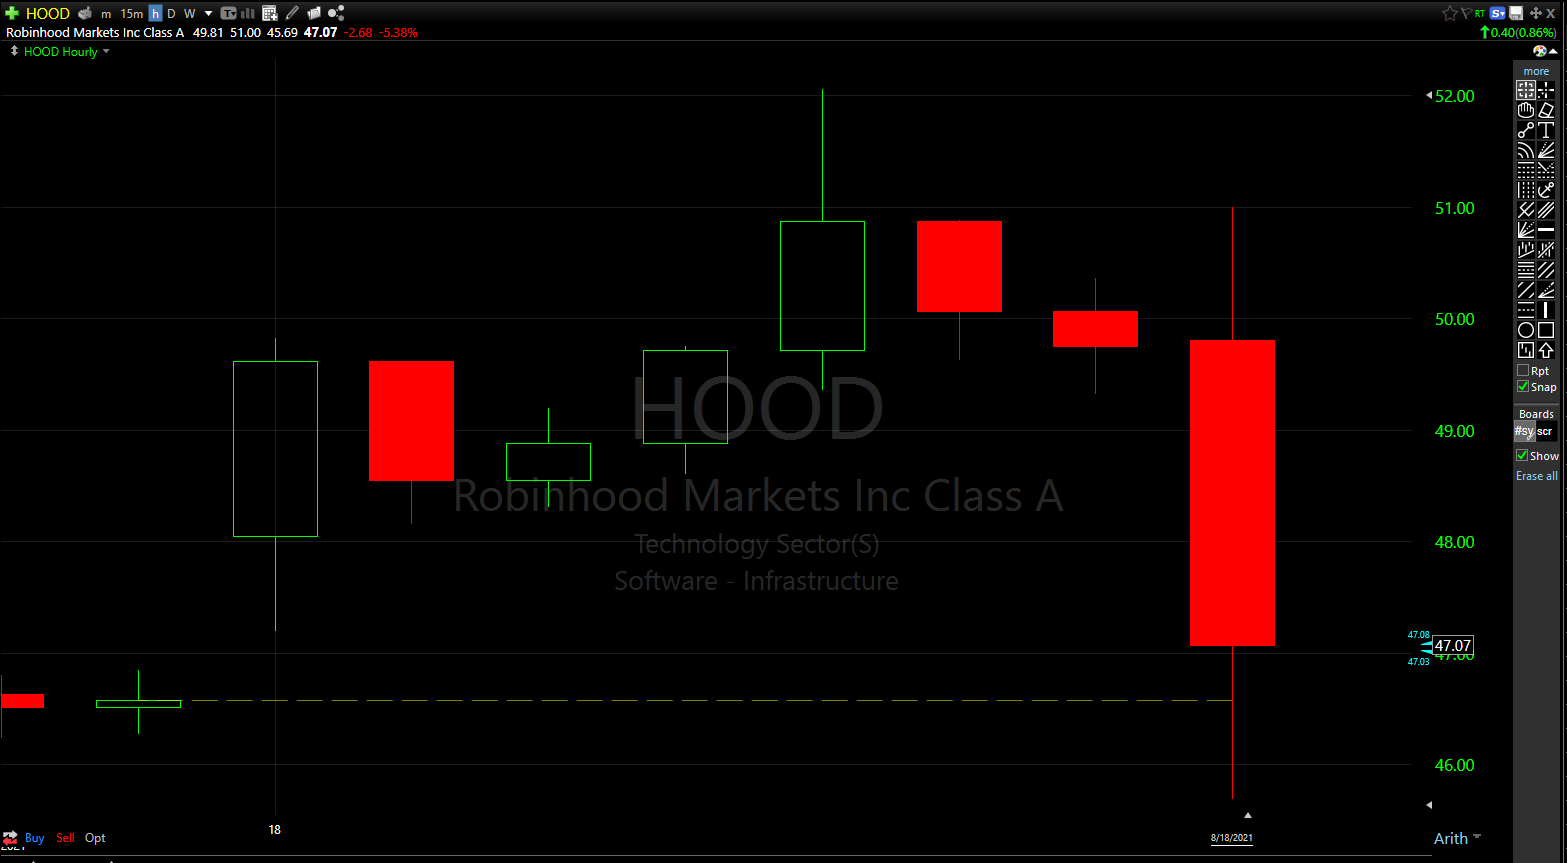 Robinhood (HOOD) stock was down nearly 8% in afterhours trading follow the company's first public earnings release.